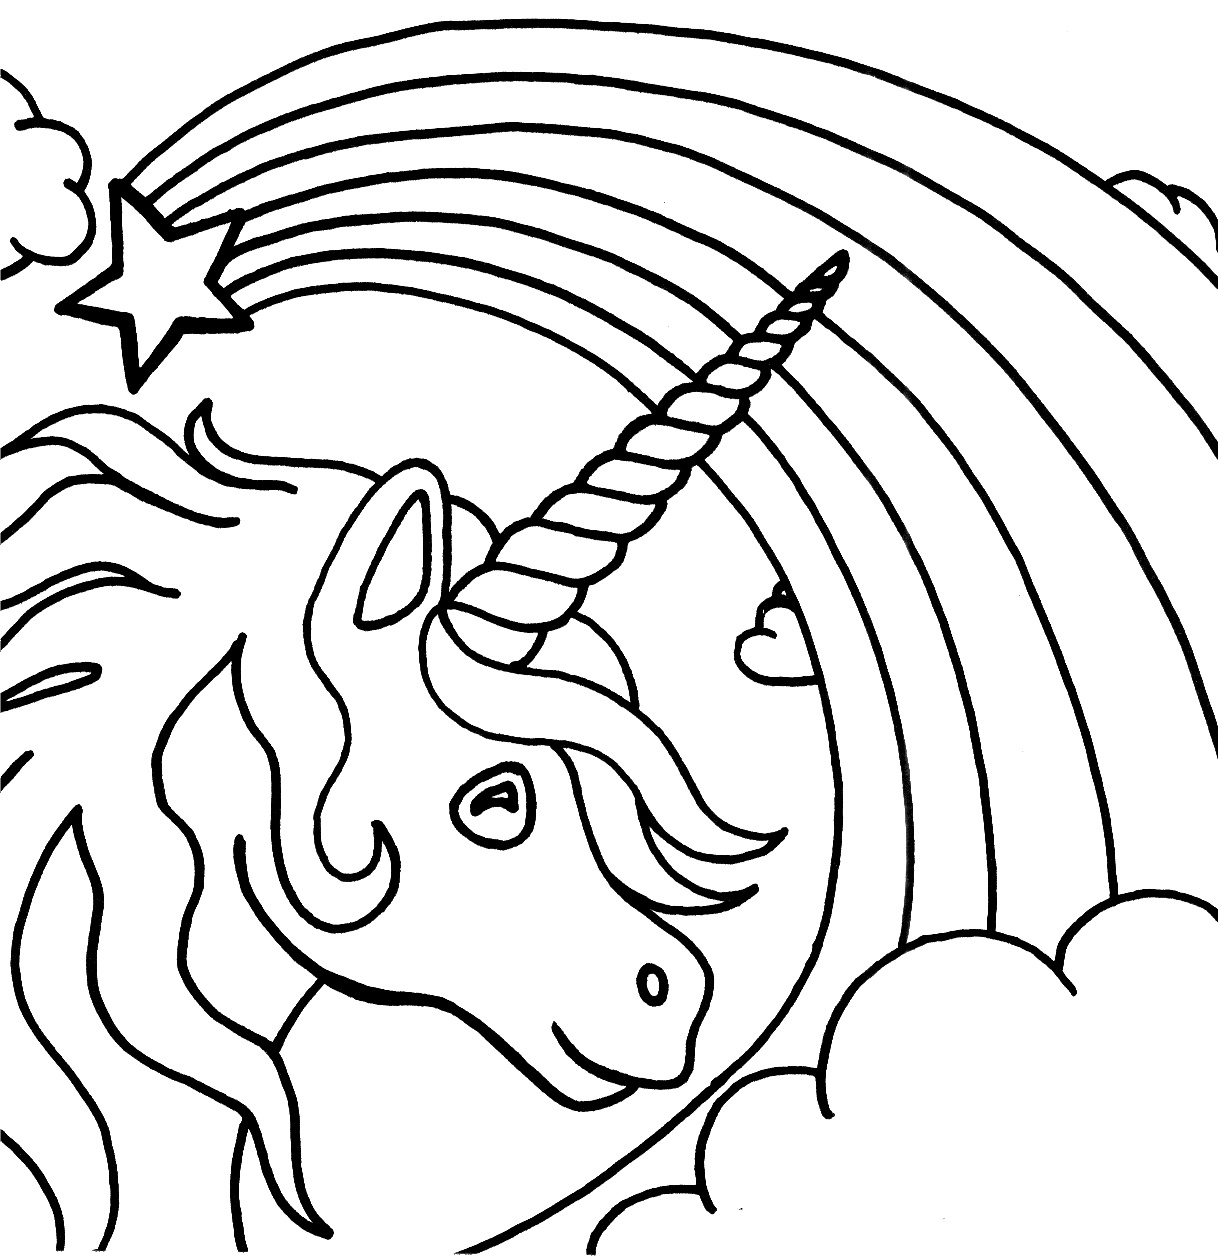 Free Printable Coloring Pages - Ez Coloring Pages - Www Free Printable Coloring Pages